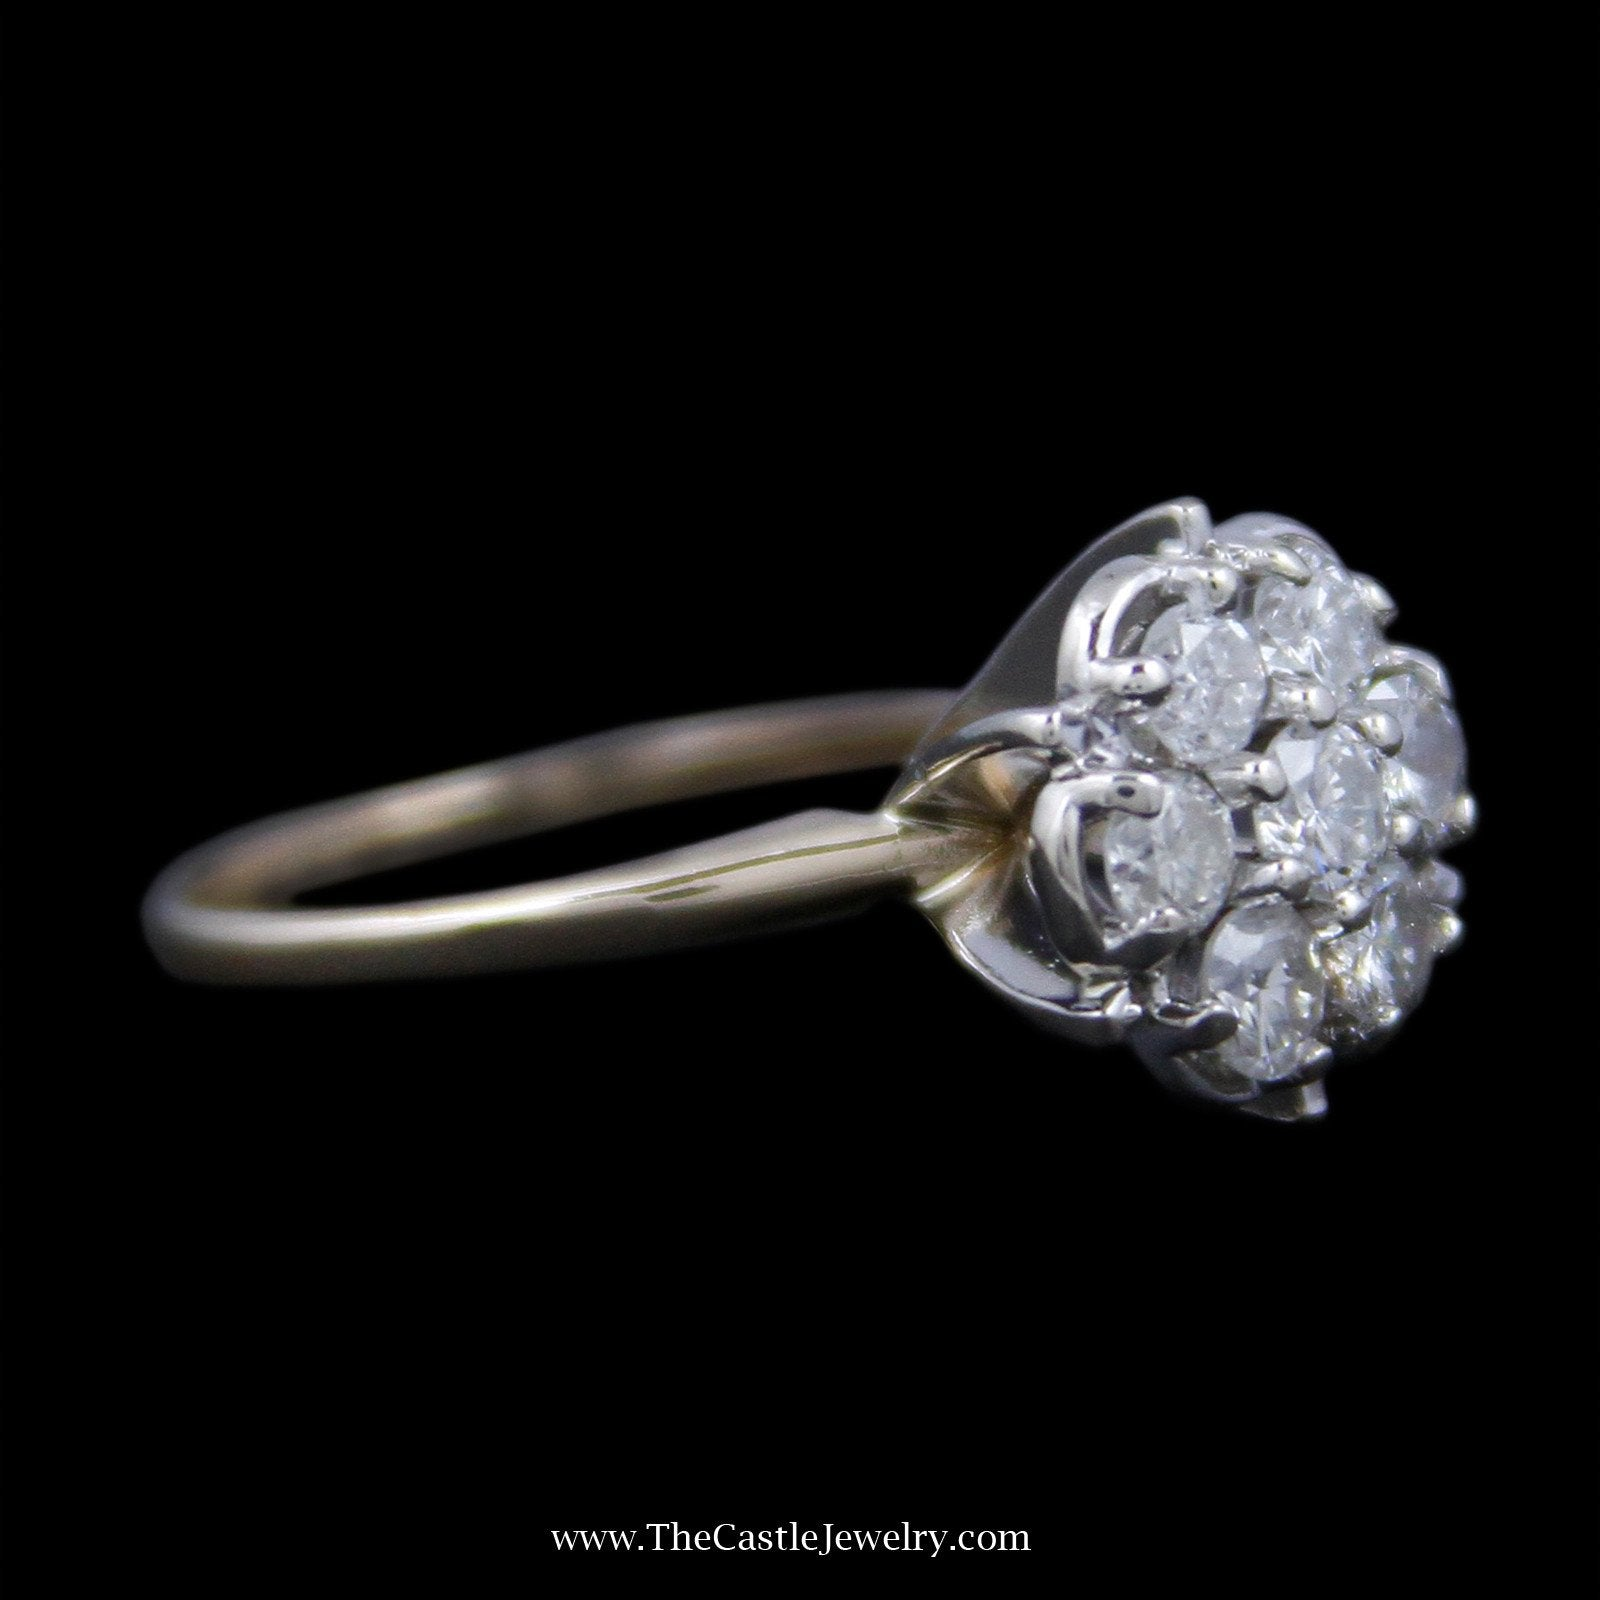 Gorgeous Round Diamond Cluster Ring with 7 Round Brilliant Cut Diamonds-2